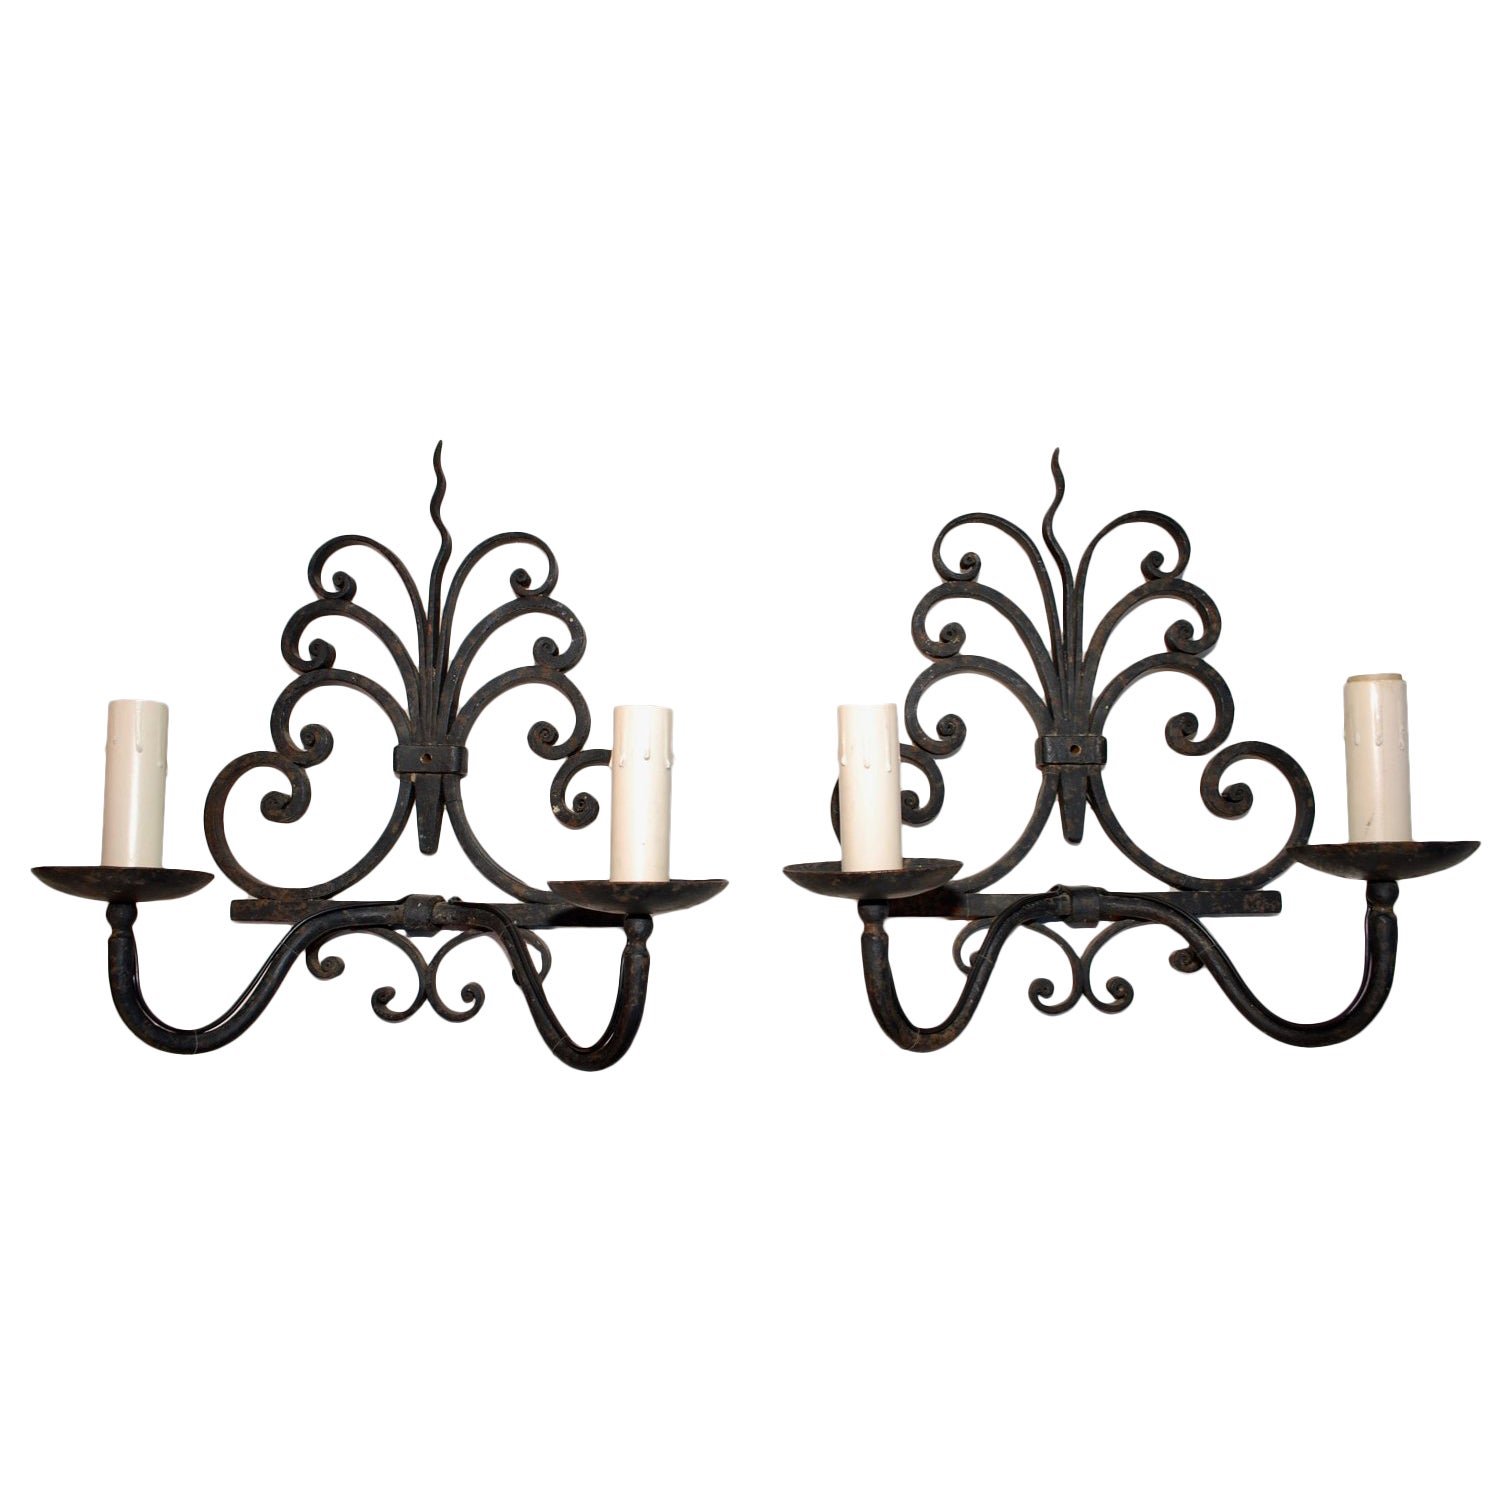 large pair of antique French wrought iron sconces